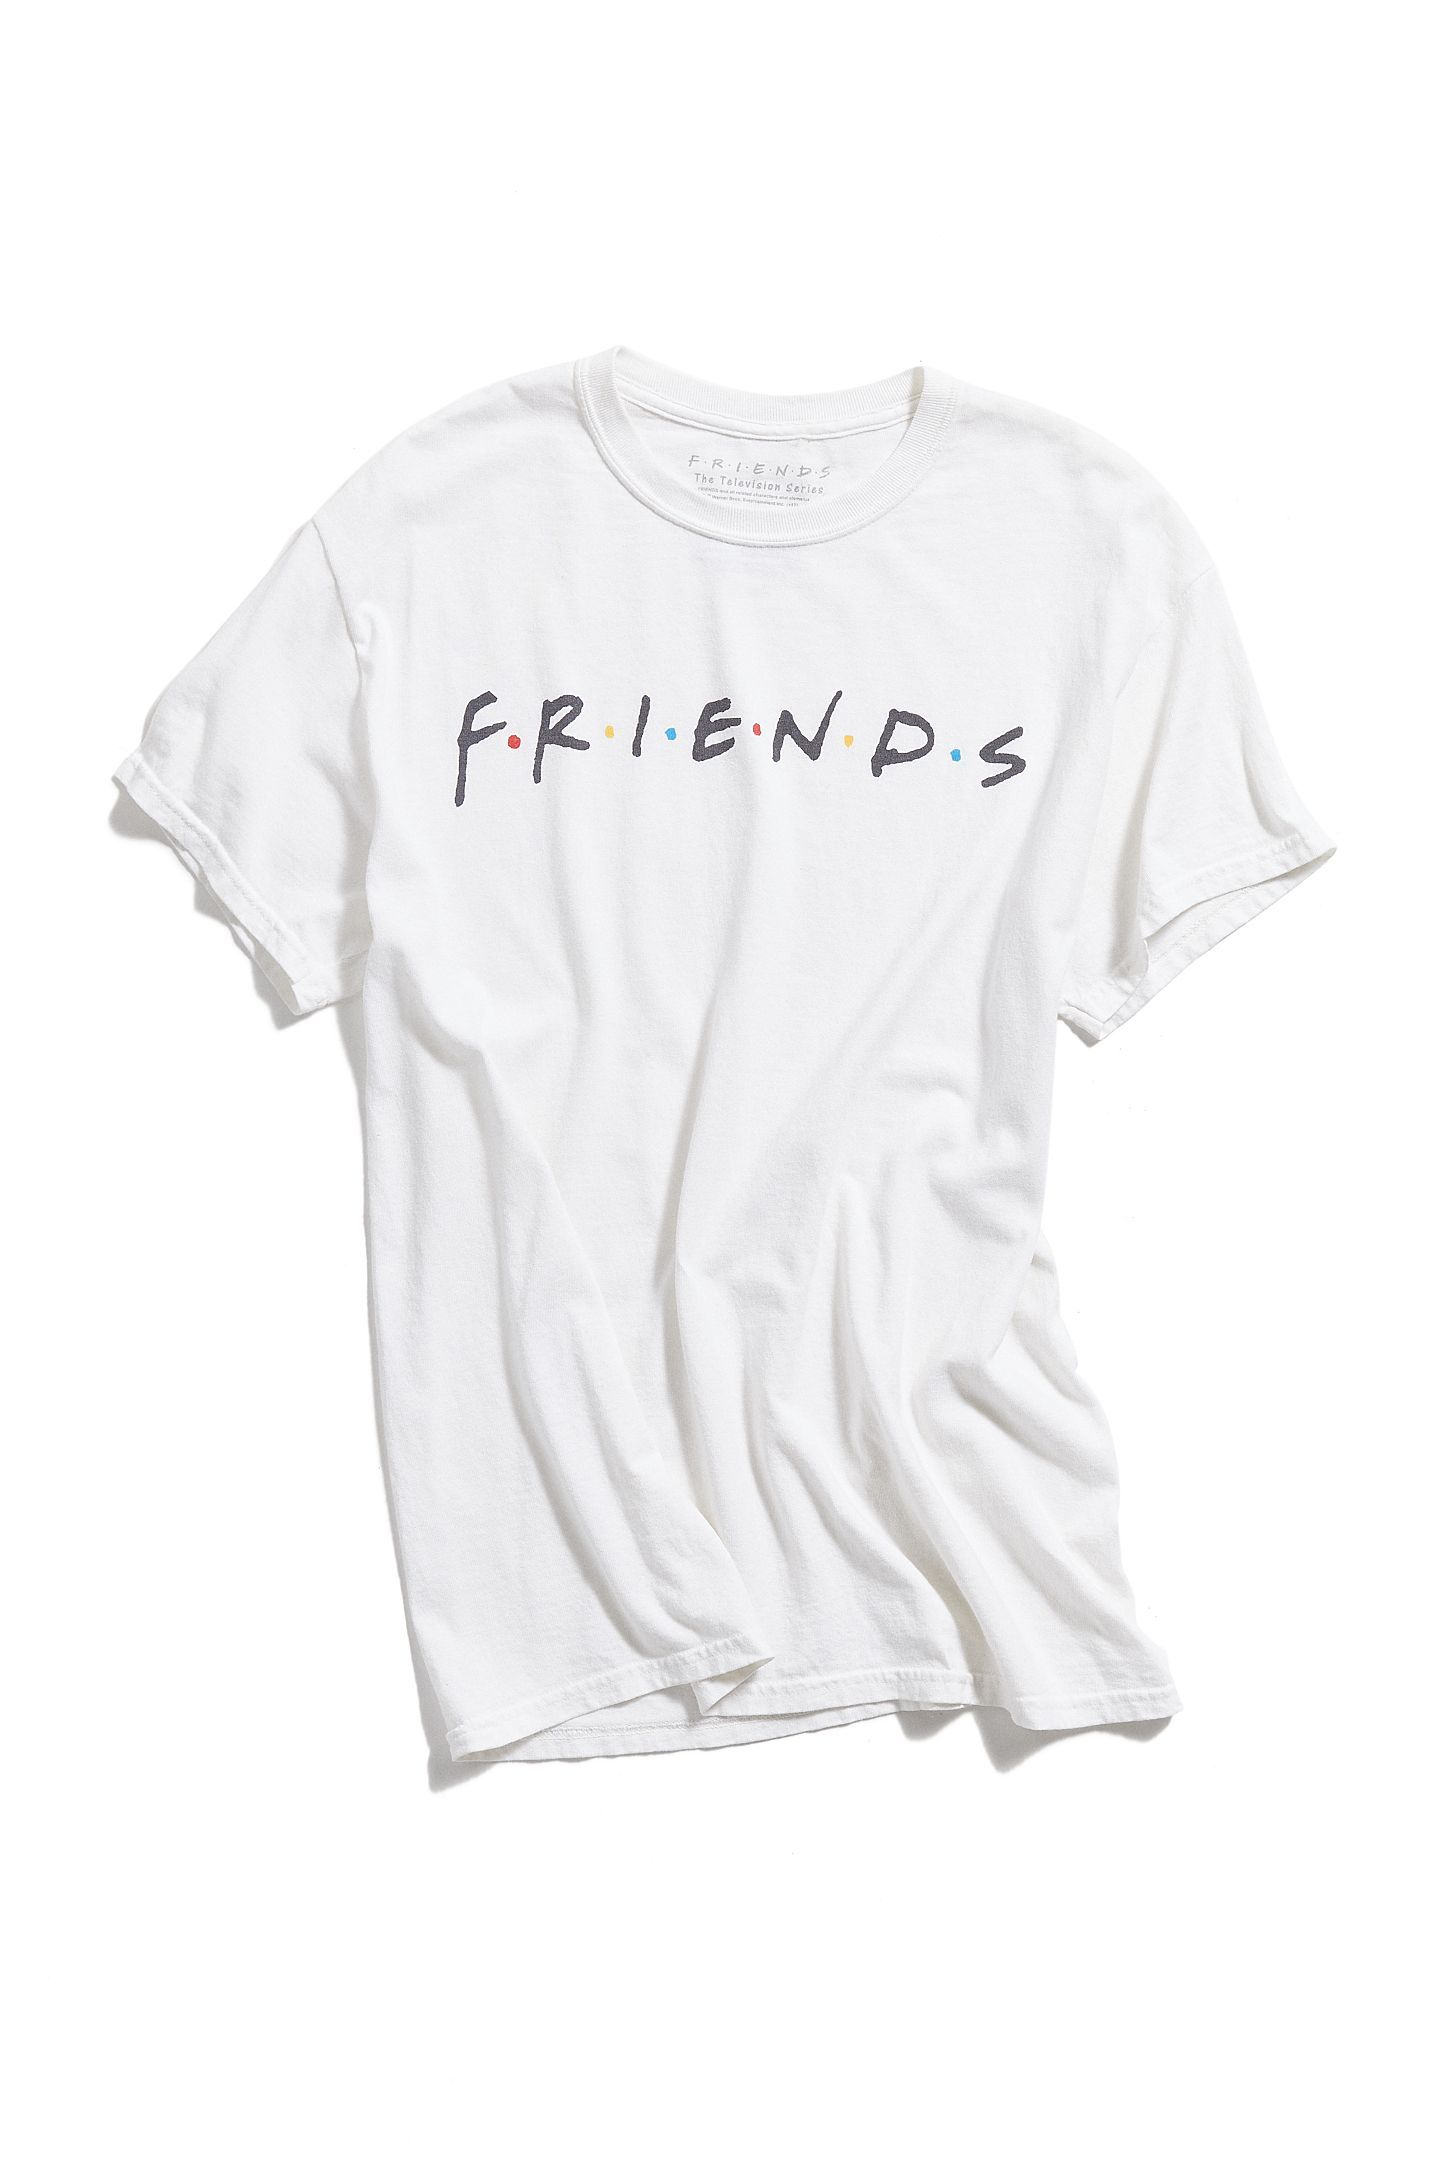 Friends Logo - Friends Logo Tee | Urban Outfitters